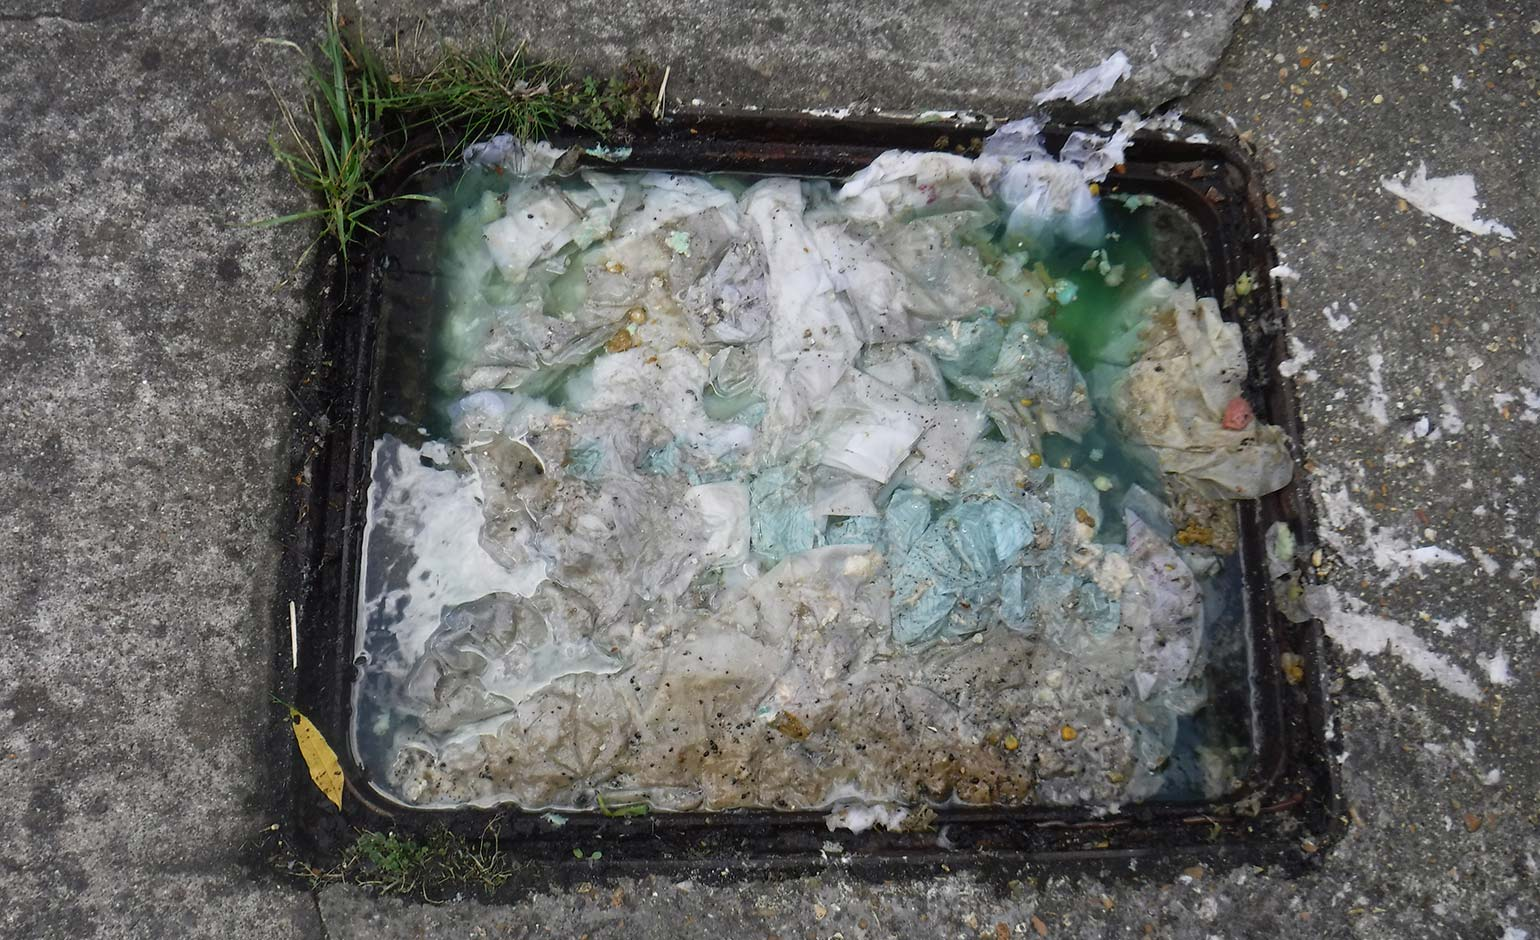 Wessex Water issues warning after wet wipes found in 93% of sewer blockages